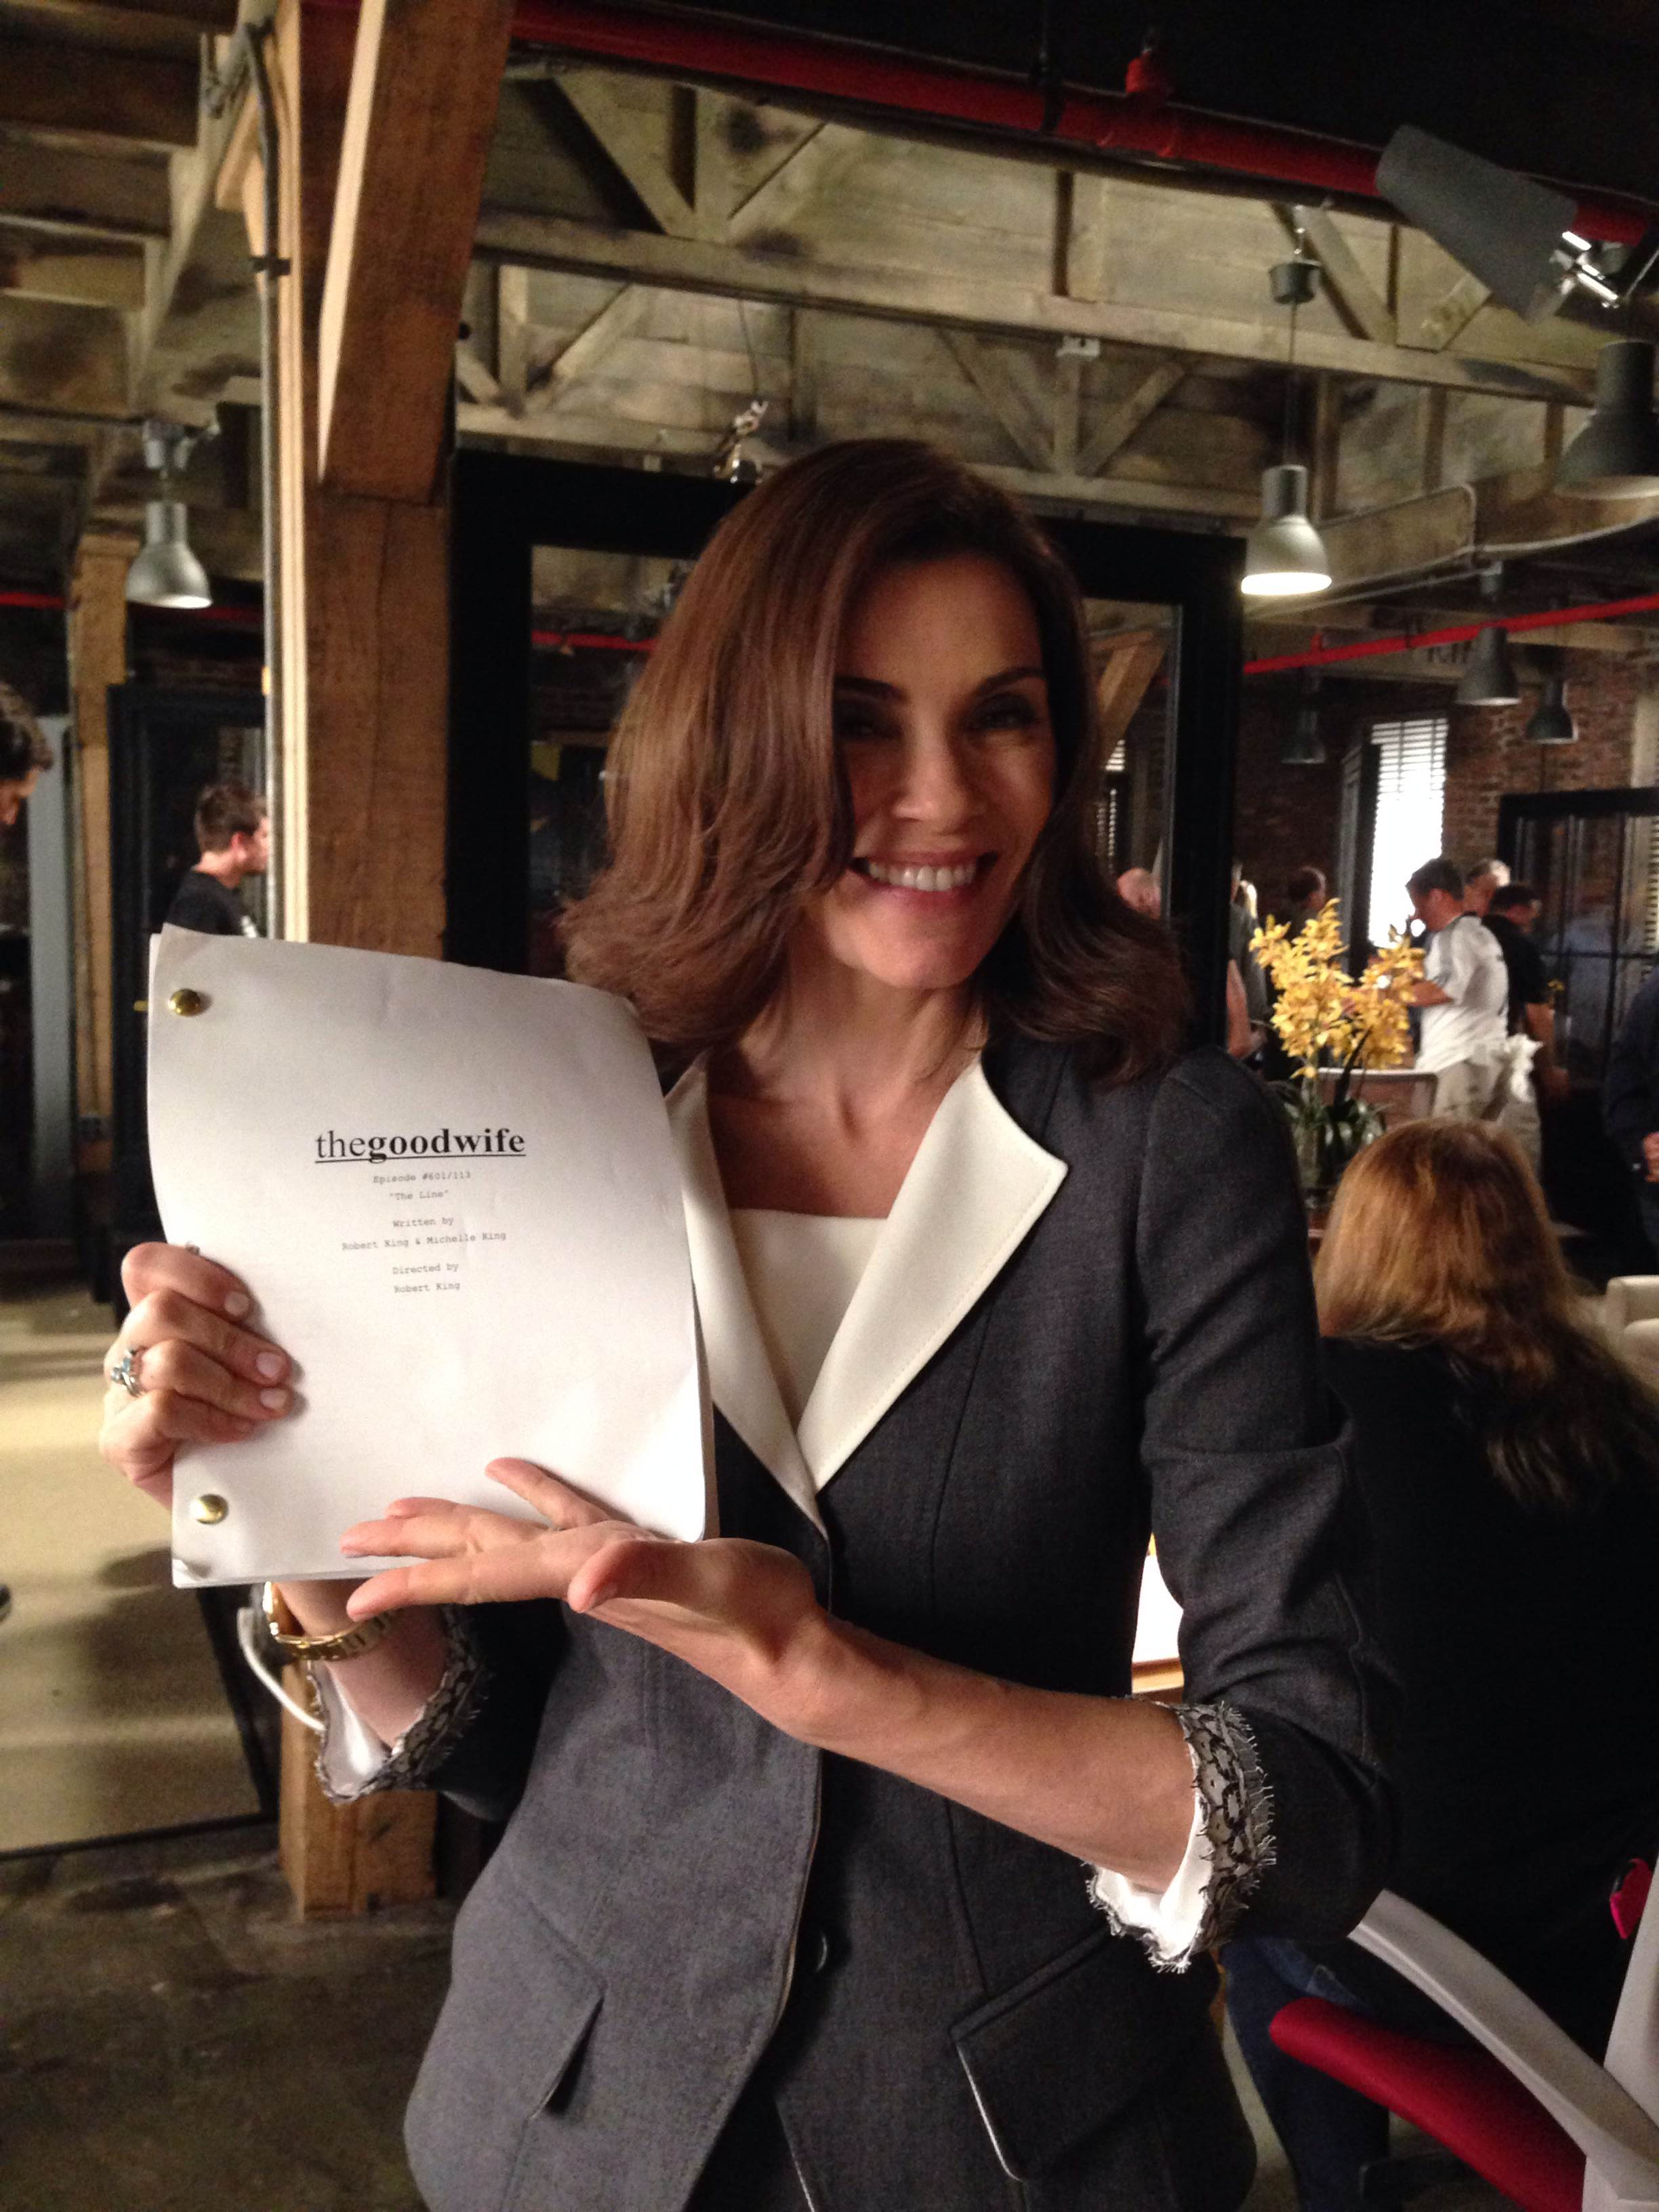 Julianna Margulies - Season 6 Production - The Good Wife